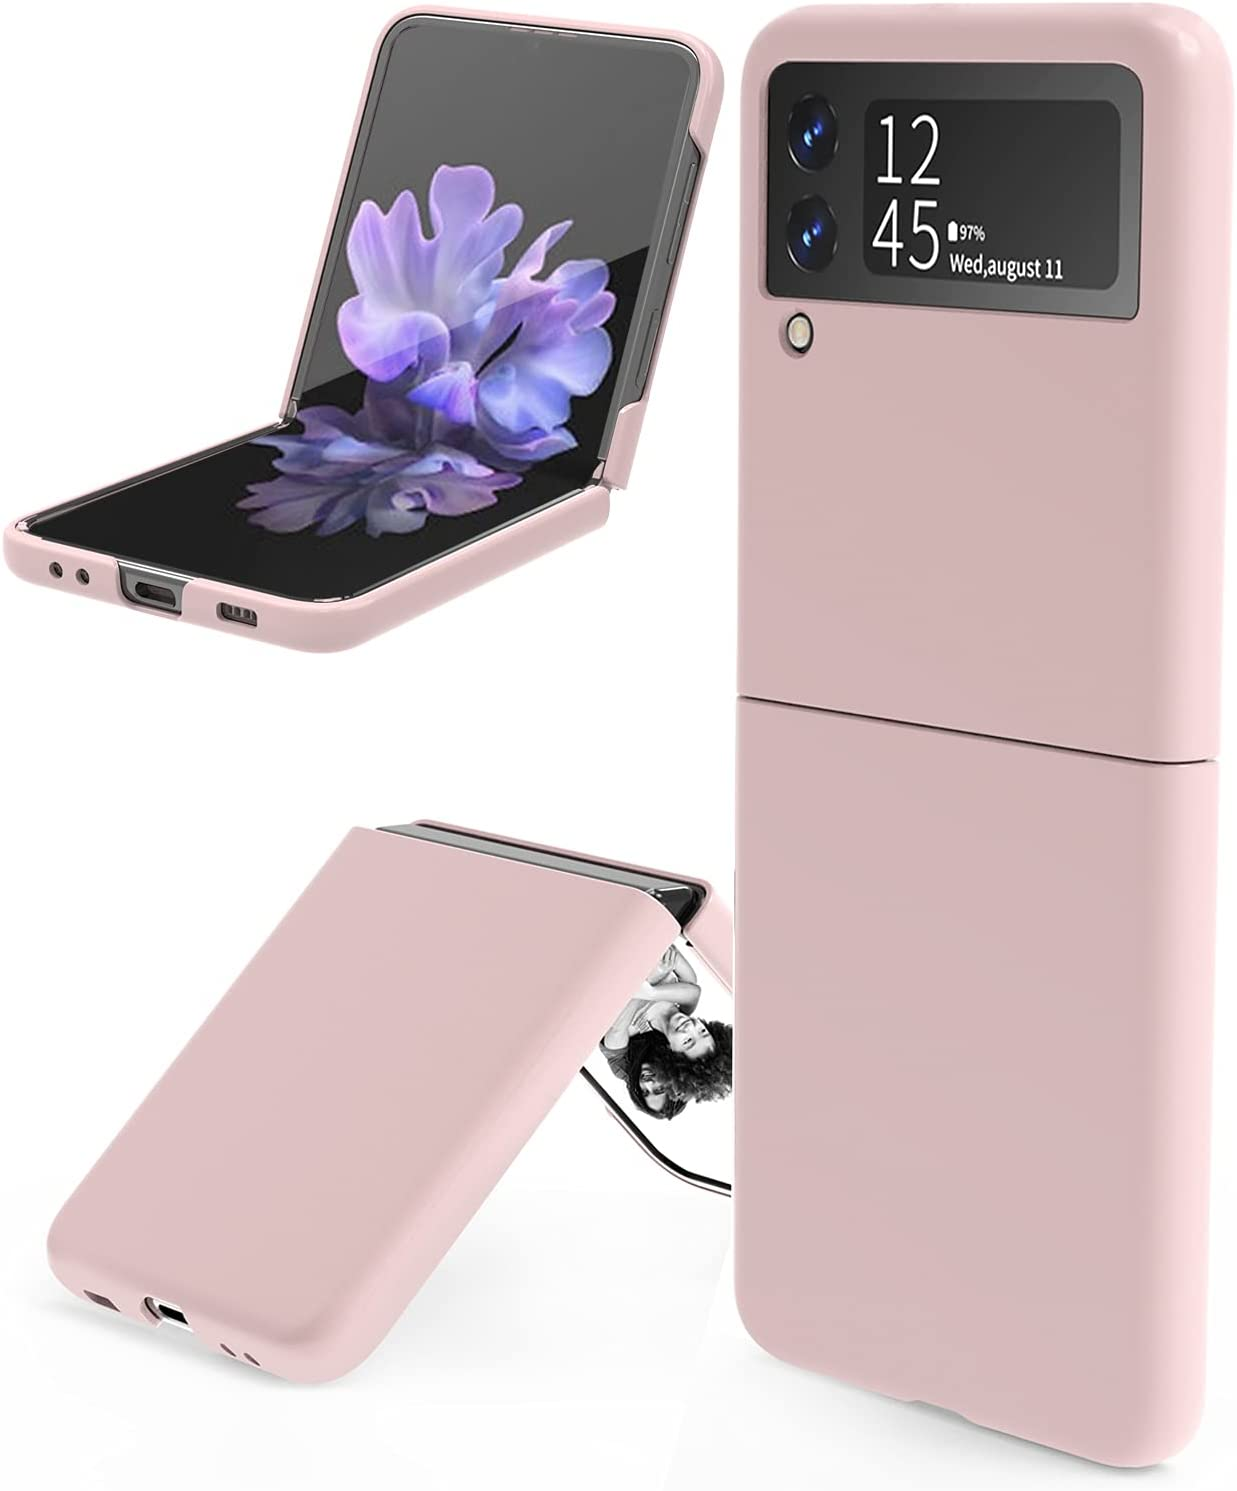 leChivée for Samsung Galaxy Z Flip 3 5G Case, Slim Durable Galaxy Z Flip 3 Phone Case Anti-Drop Wear-Resistant Hard PC Protective Cover for Samsung Z Flip 3 5G (Pink)